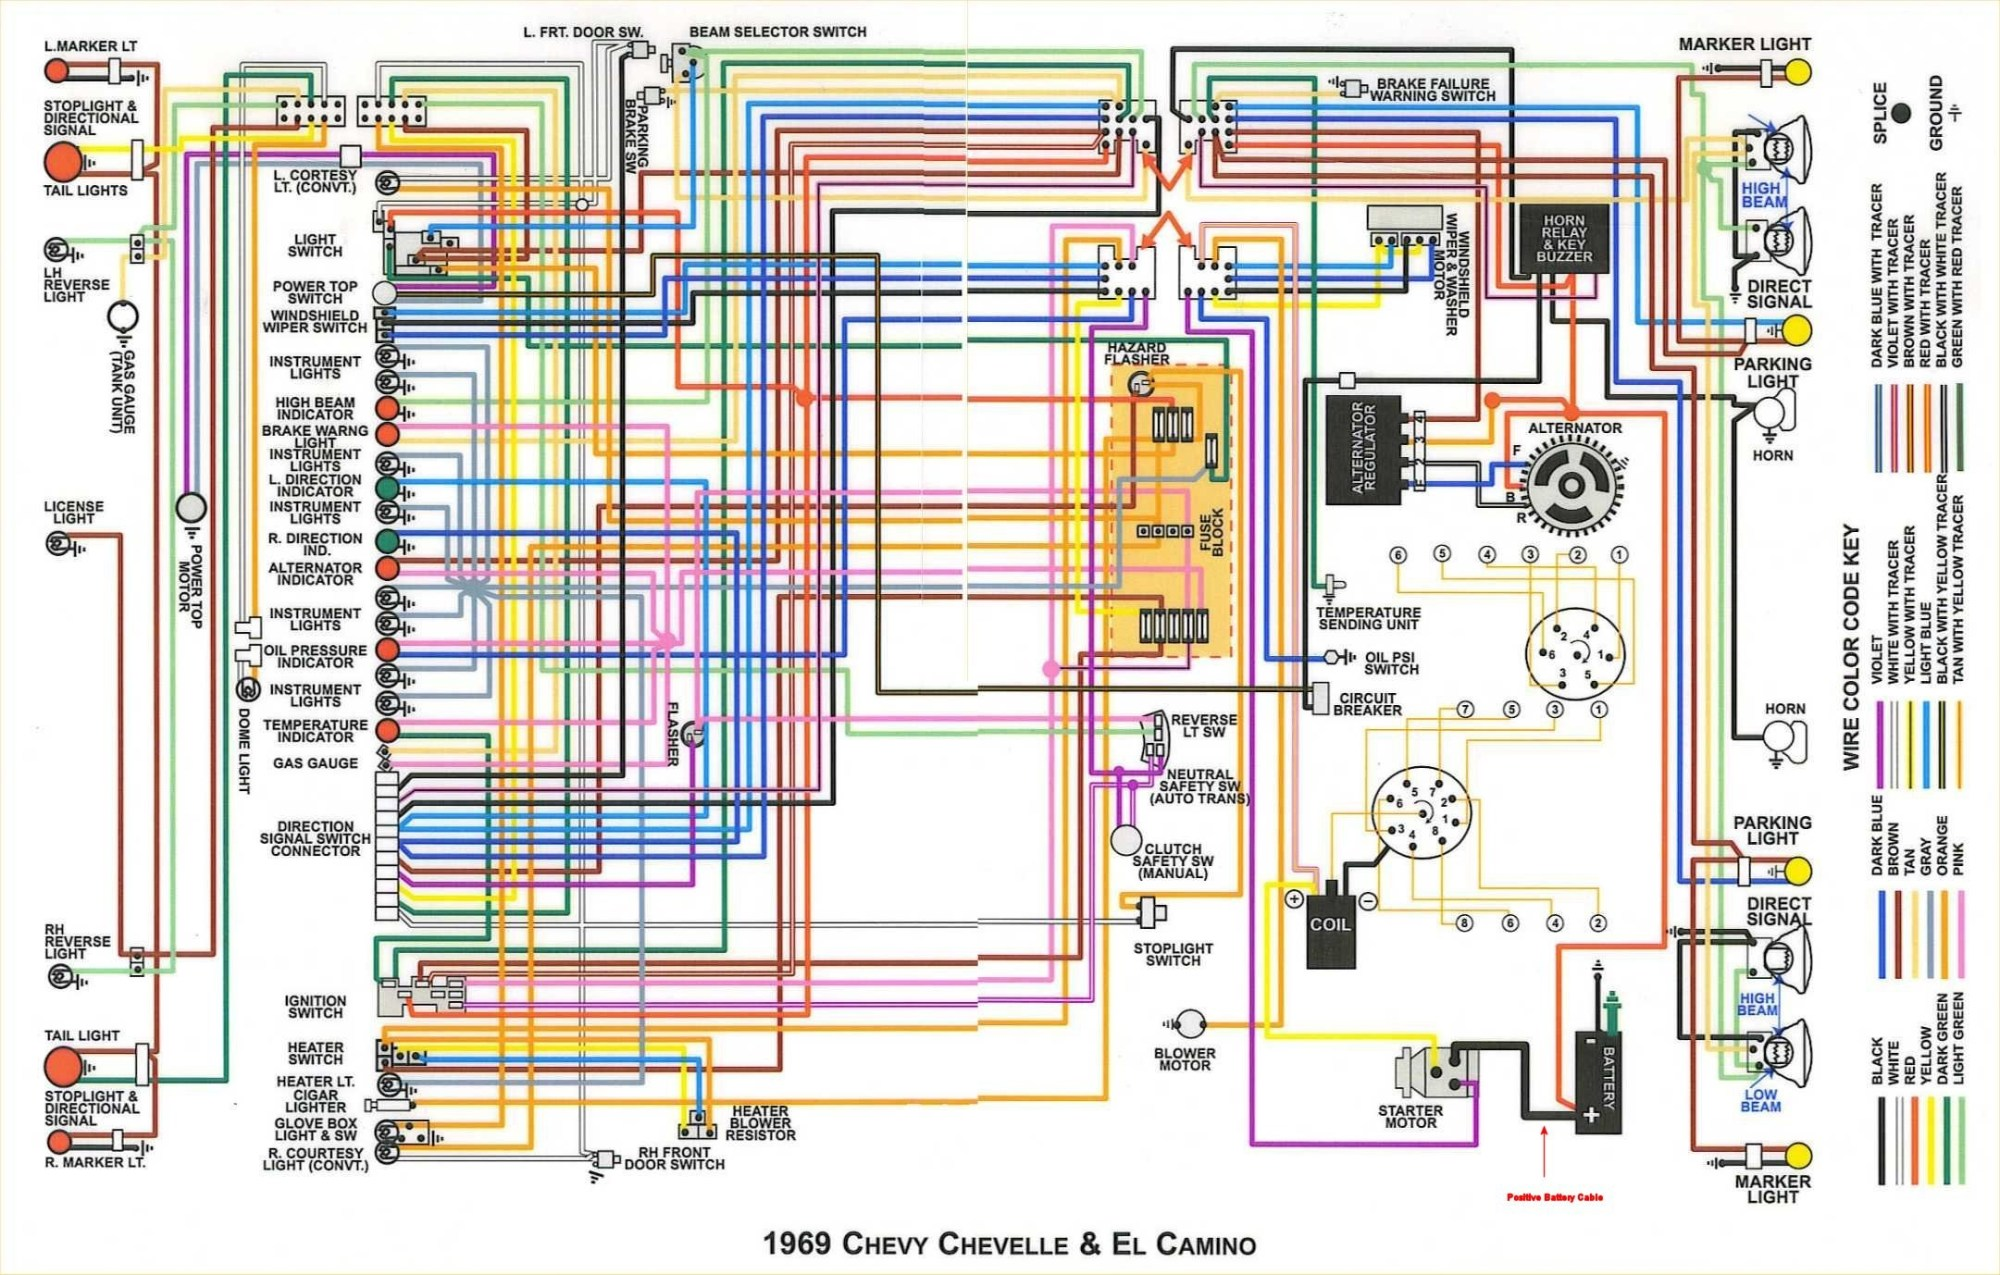 hight resolution of 1968 chevelle wiring harness diagram wiring diagram third level 1966 chevelle wiring diagram pdf 1966 chevelle wiring diagram